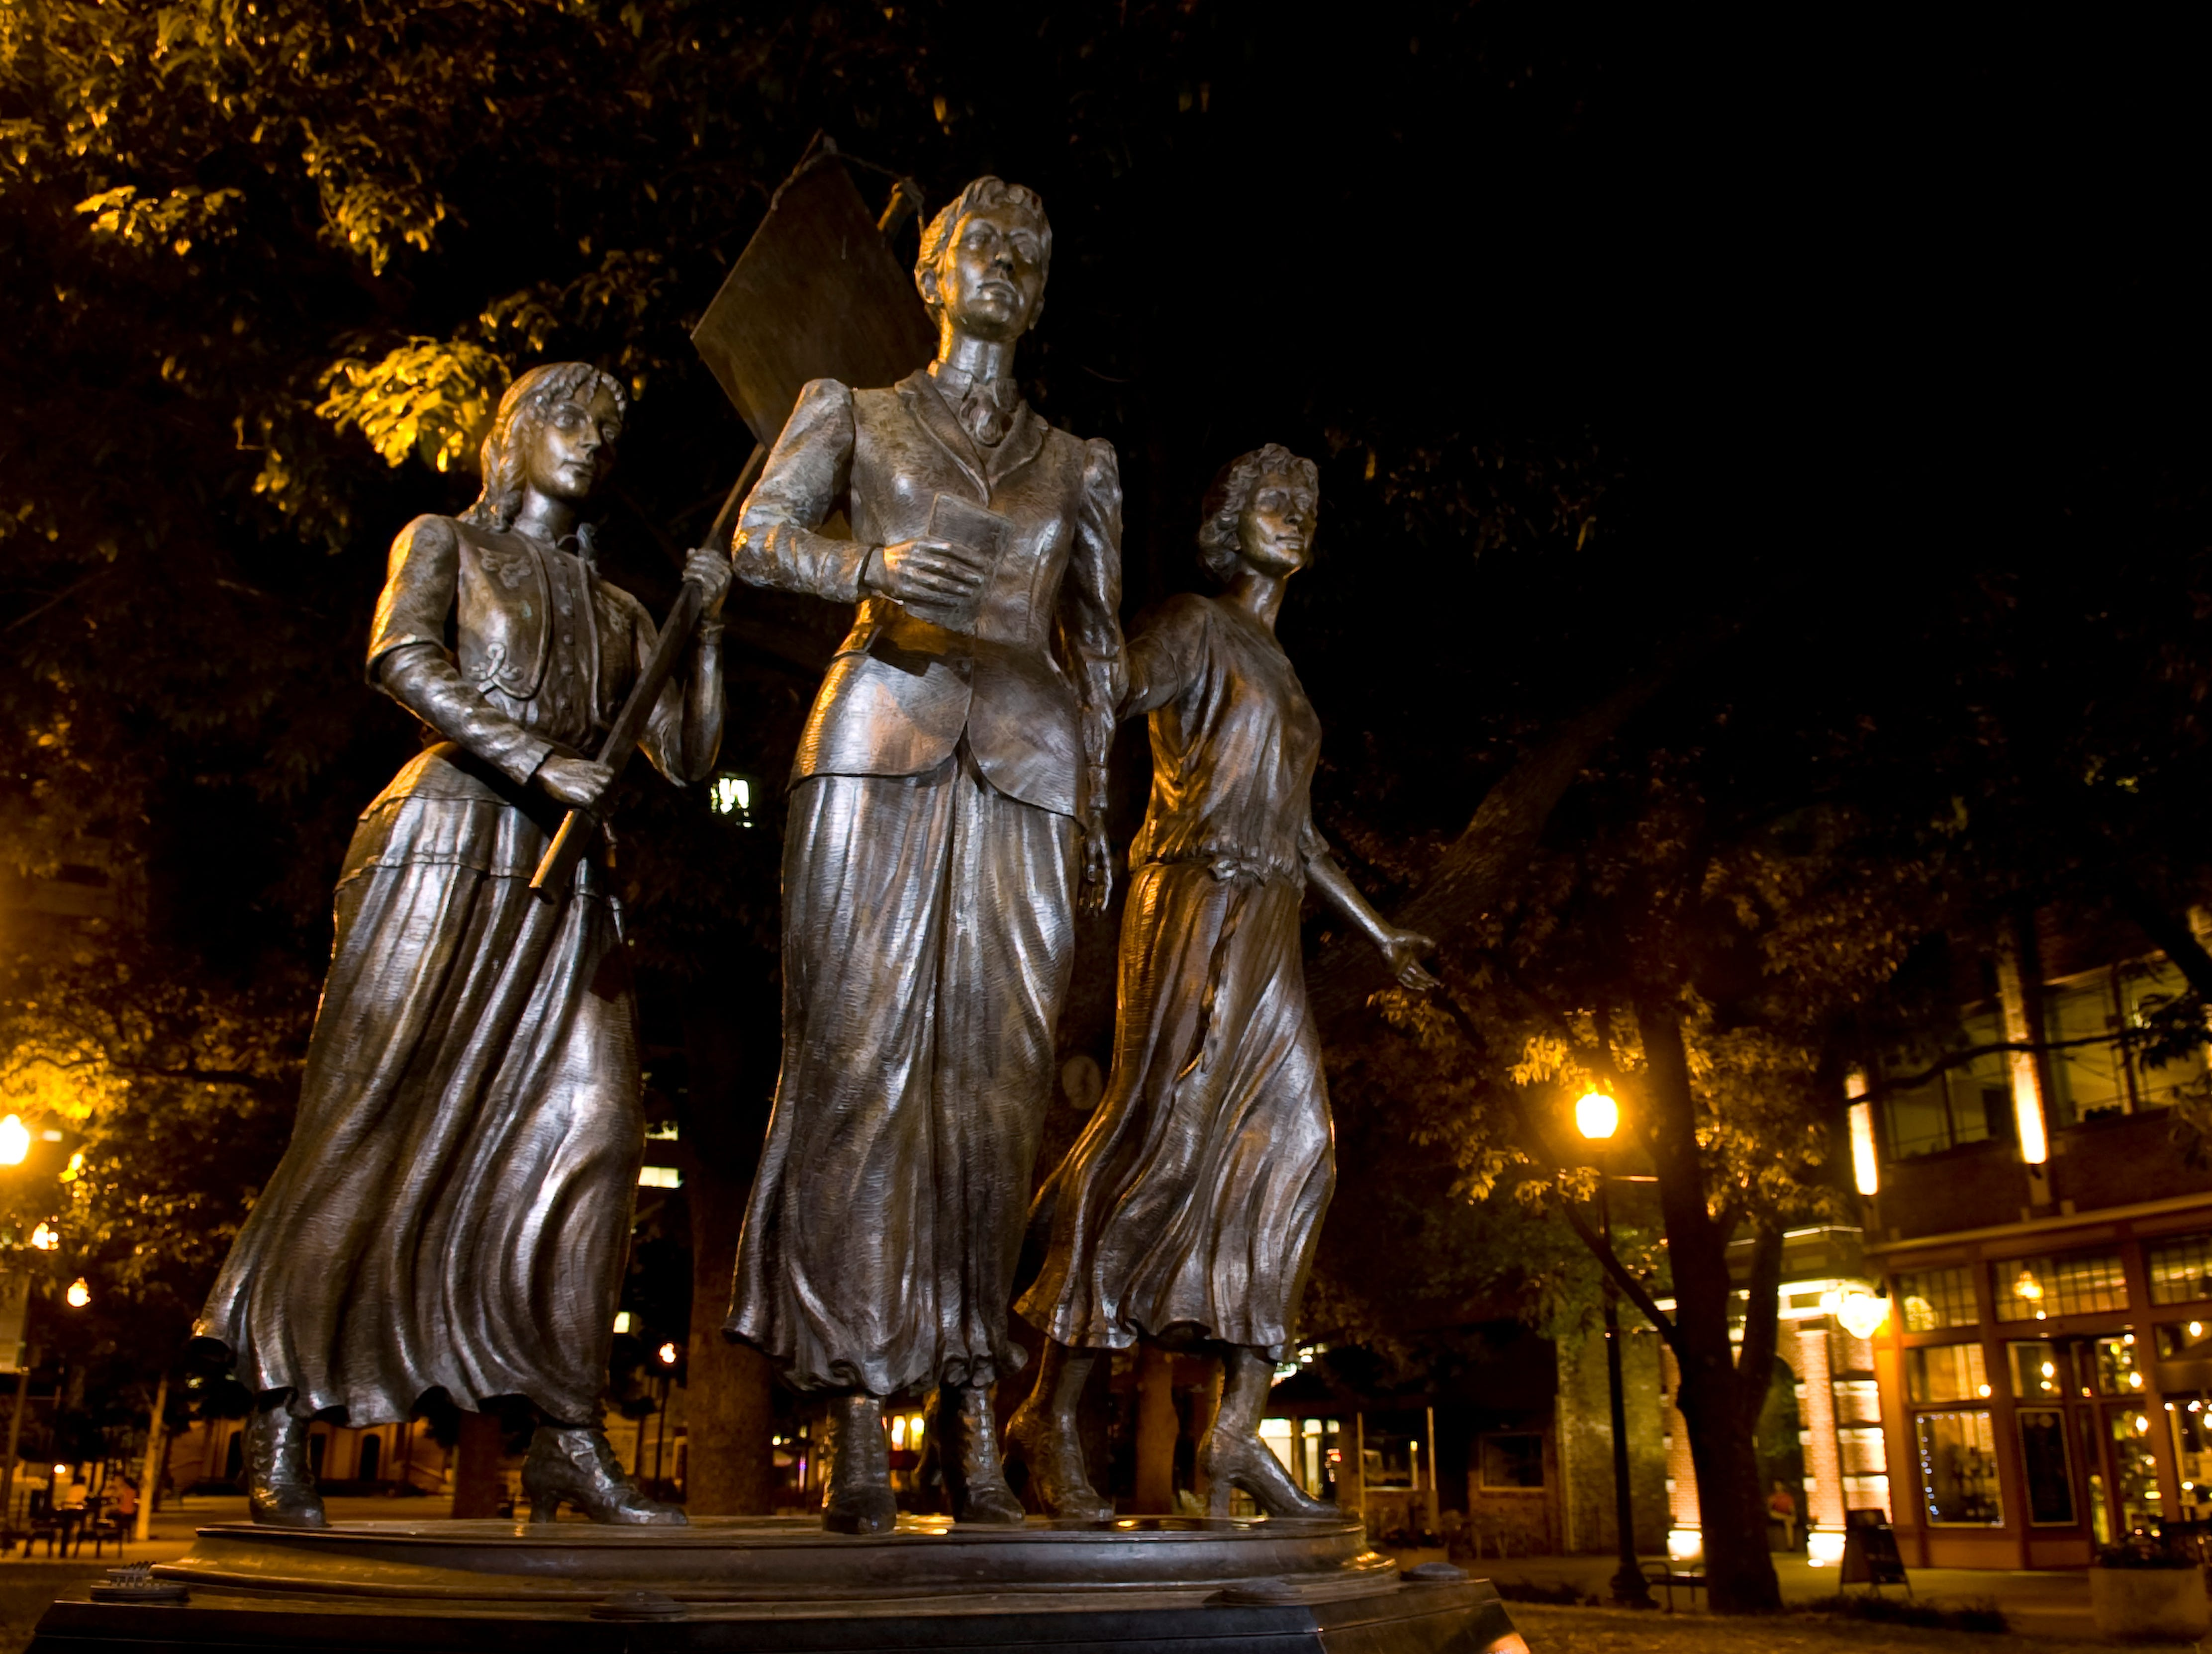 The Tennessee Women's Suffrage Memorial at the entrance to Market Square is pictured on July 20, 2009. The Memorial was unveiled in August of 2006 and was sculpted by Nashville's Alan LeQuire. The Memorial depicts Tennessee sufragists Lizzie Crozier French, center, Anne Dallas Dudley, left, and Elizabeth Avery Meriwether.